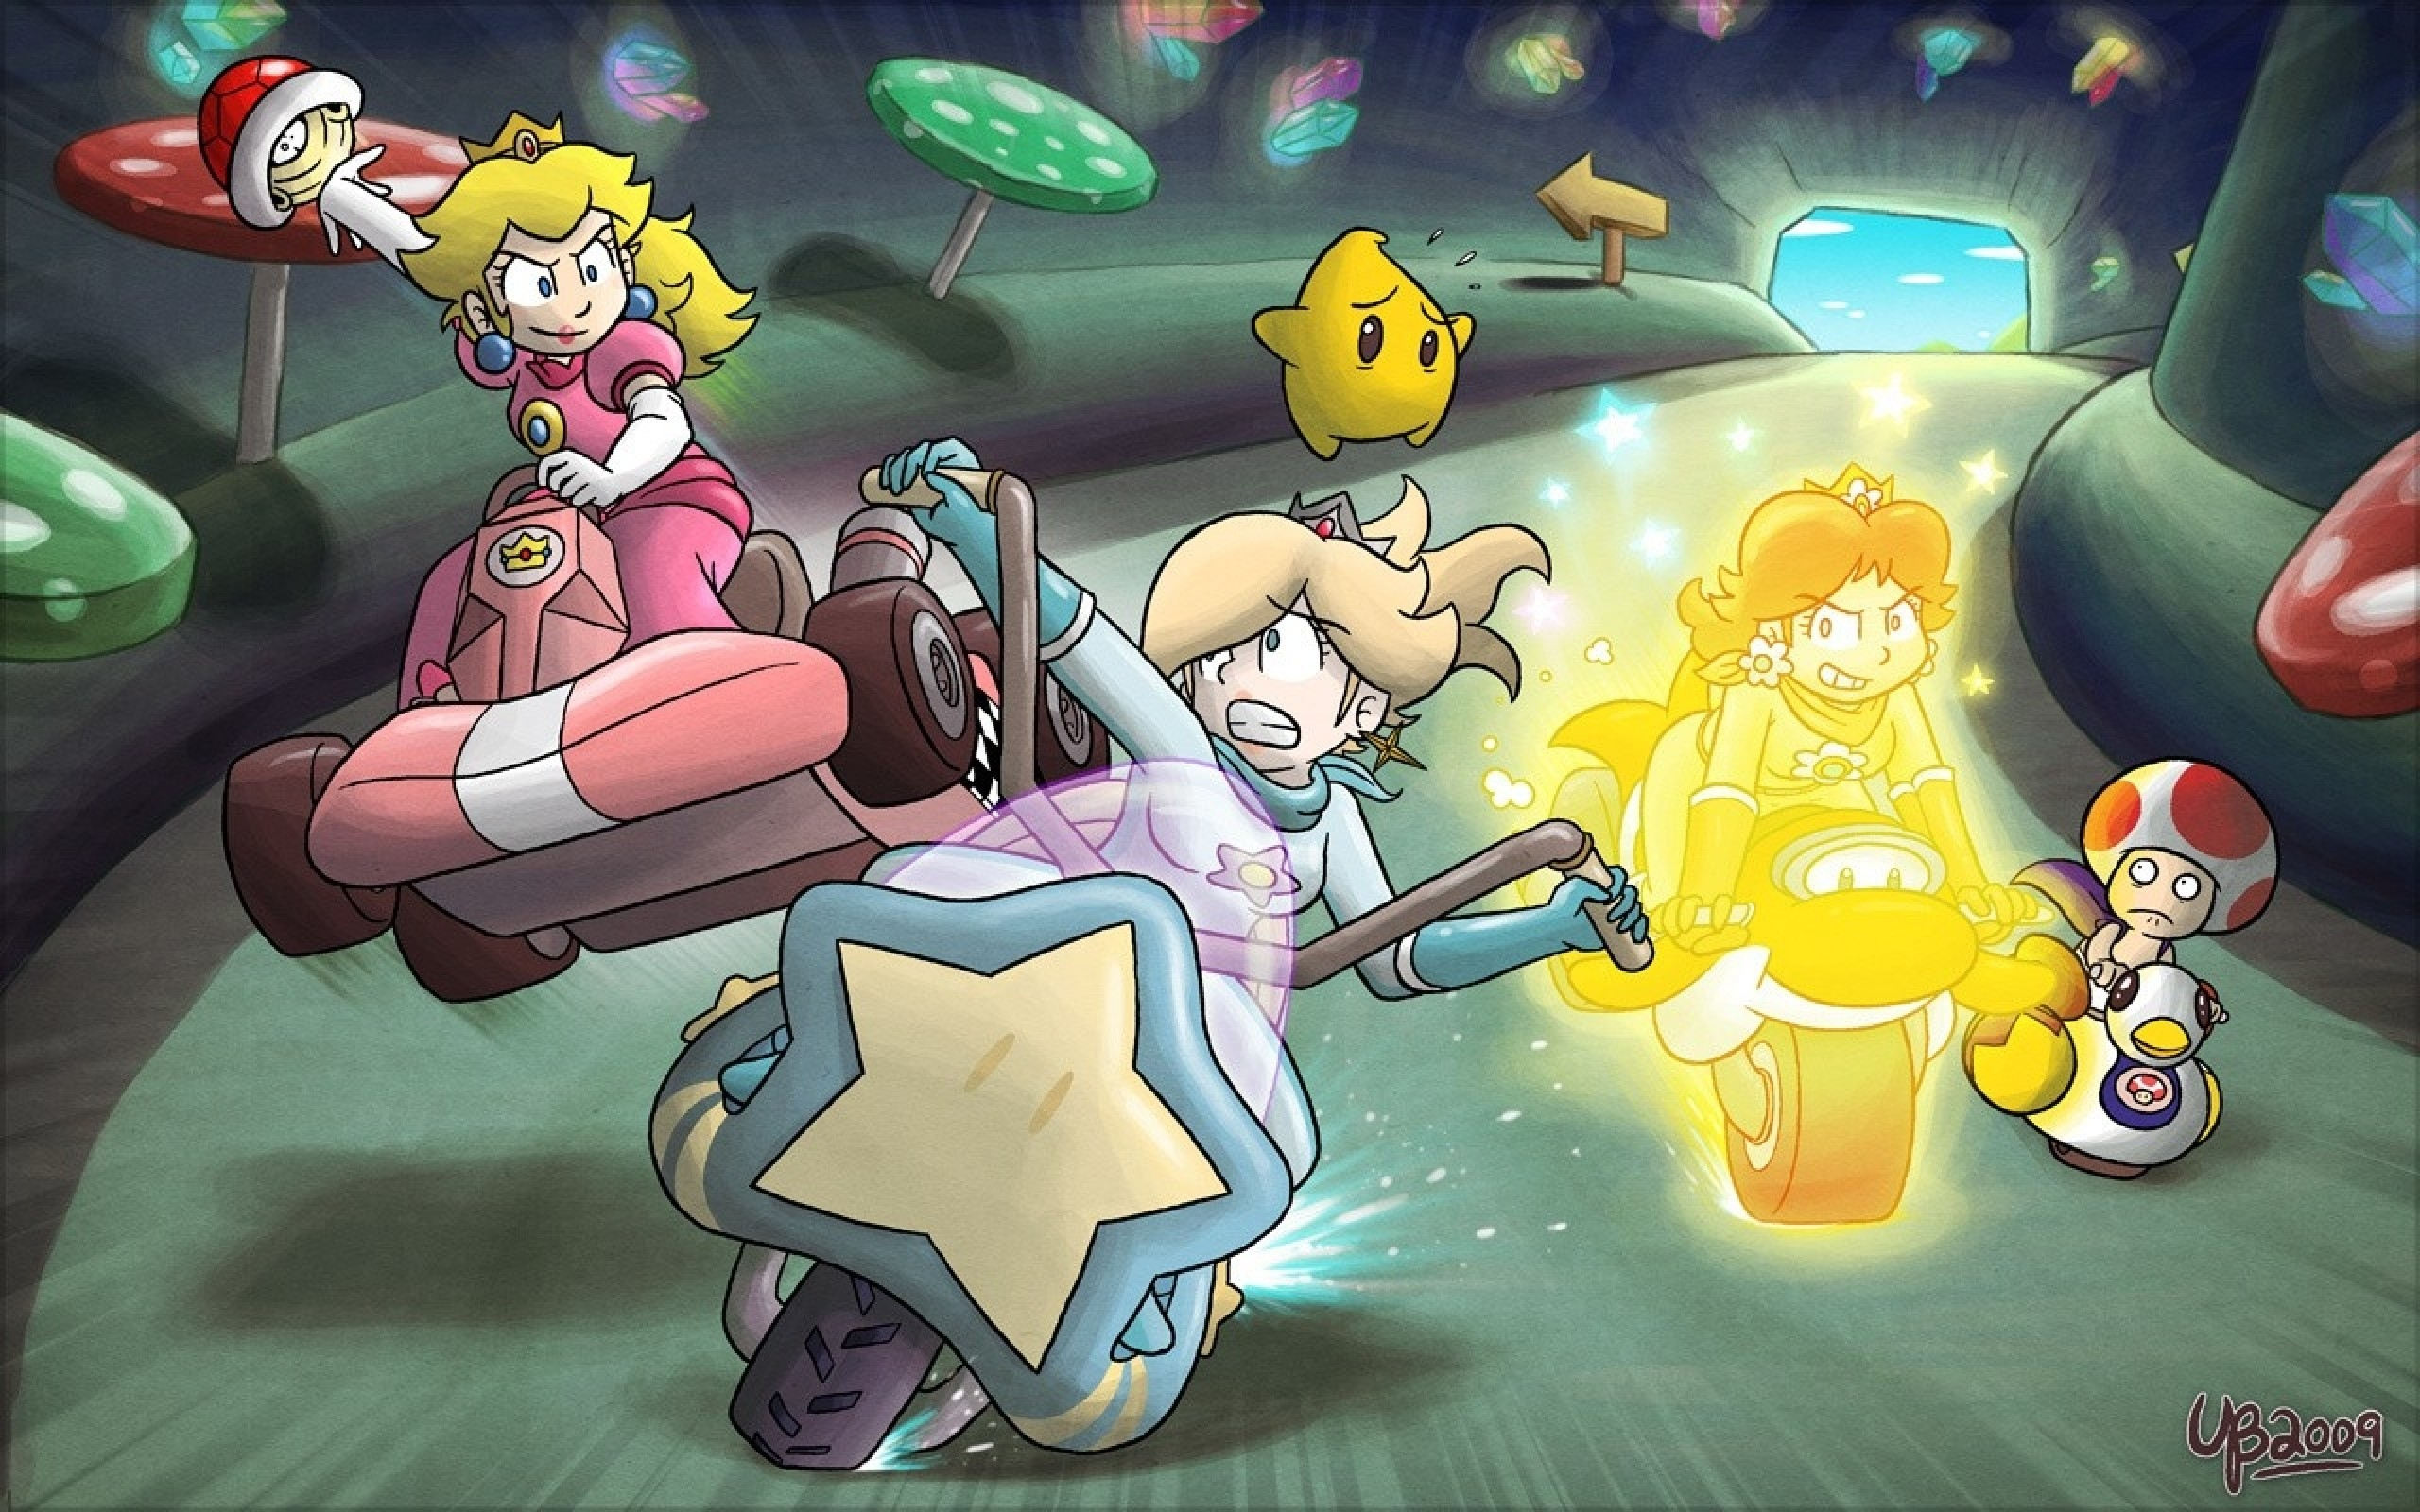 2560x1600 princess peach mario kart princess daisy princess rosalina Wallpaper HD